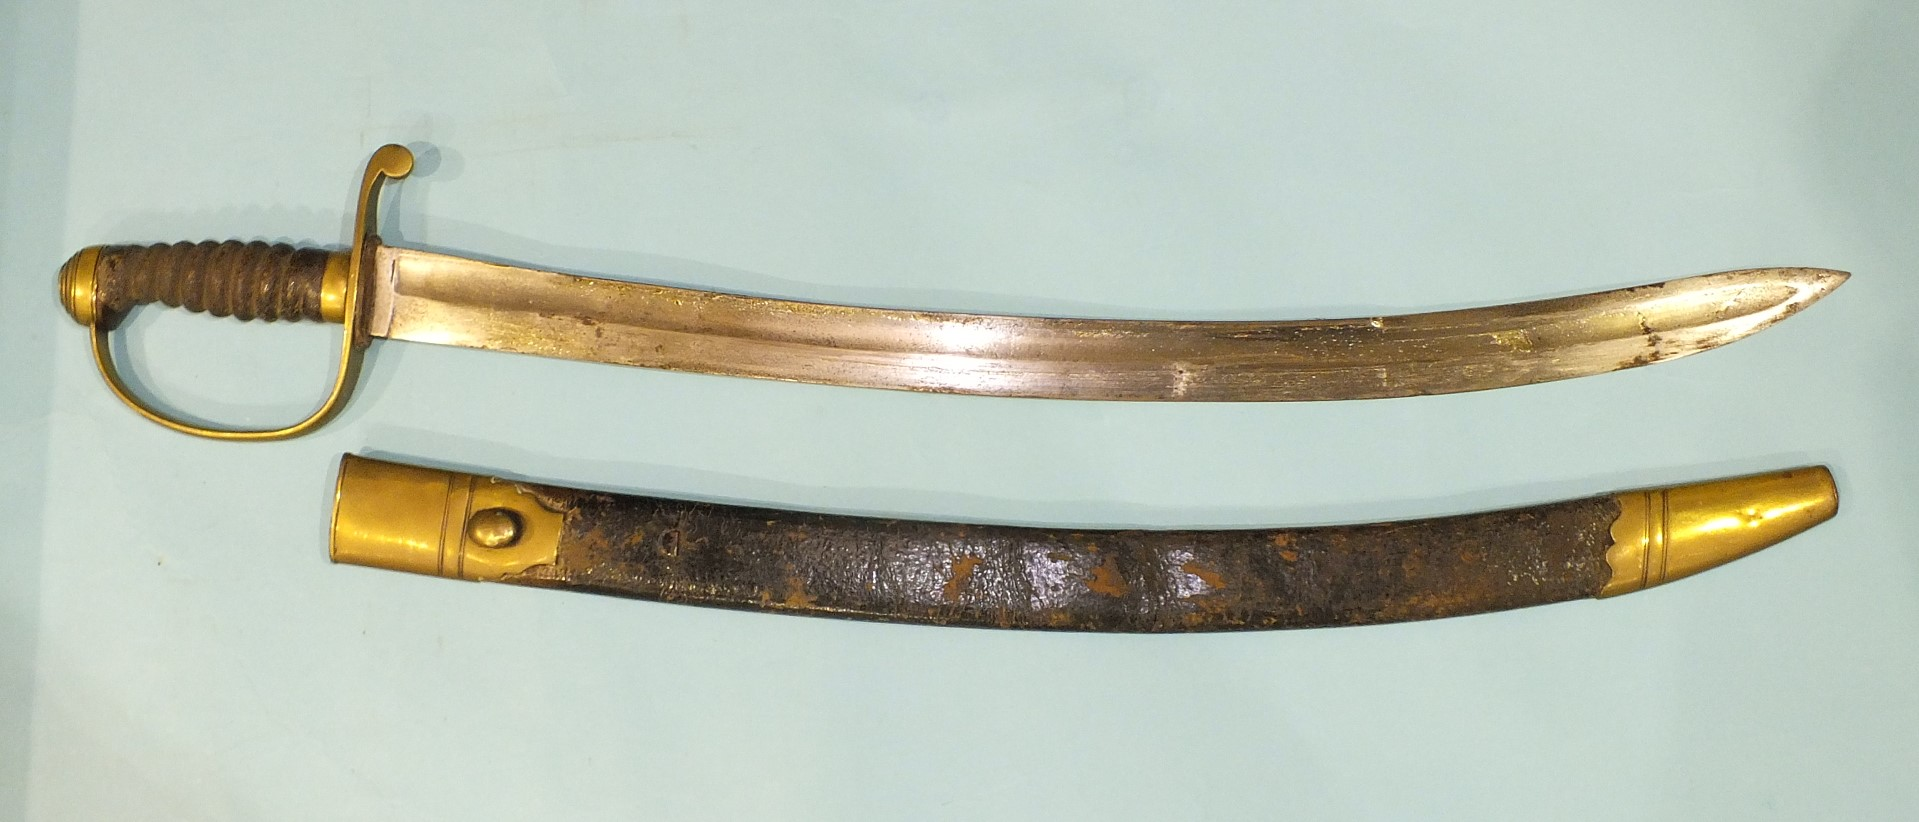 Lot 222 - A brass stirrup hilted short sabre with fish-skin grip and 61cm slightly curved blade in brass